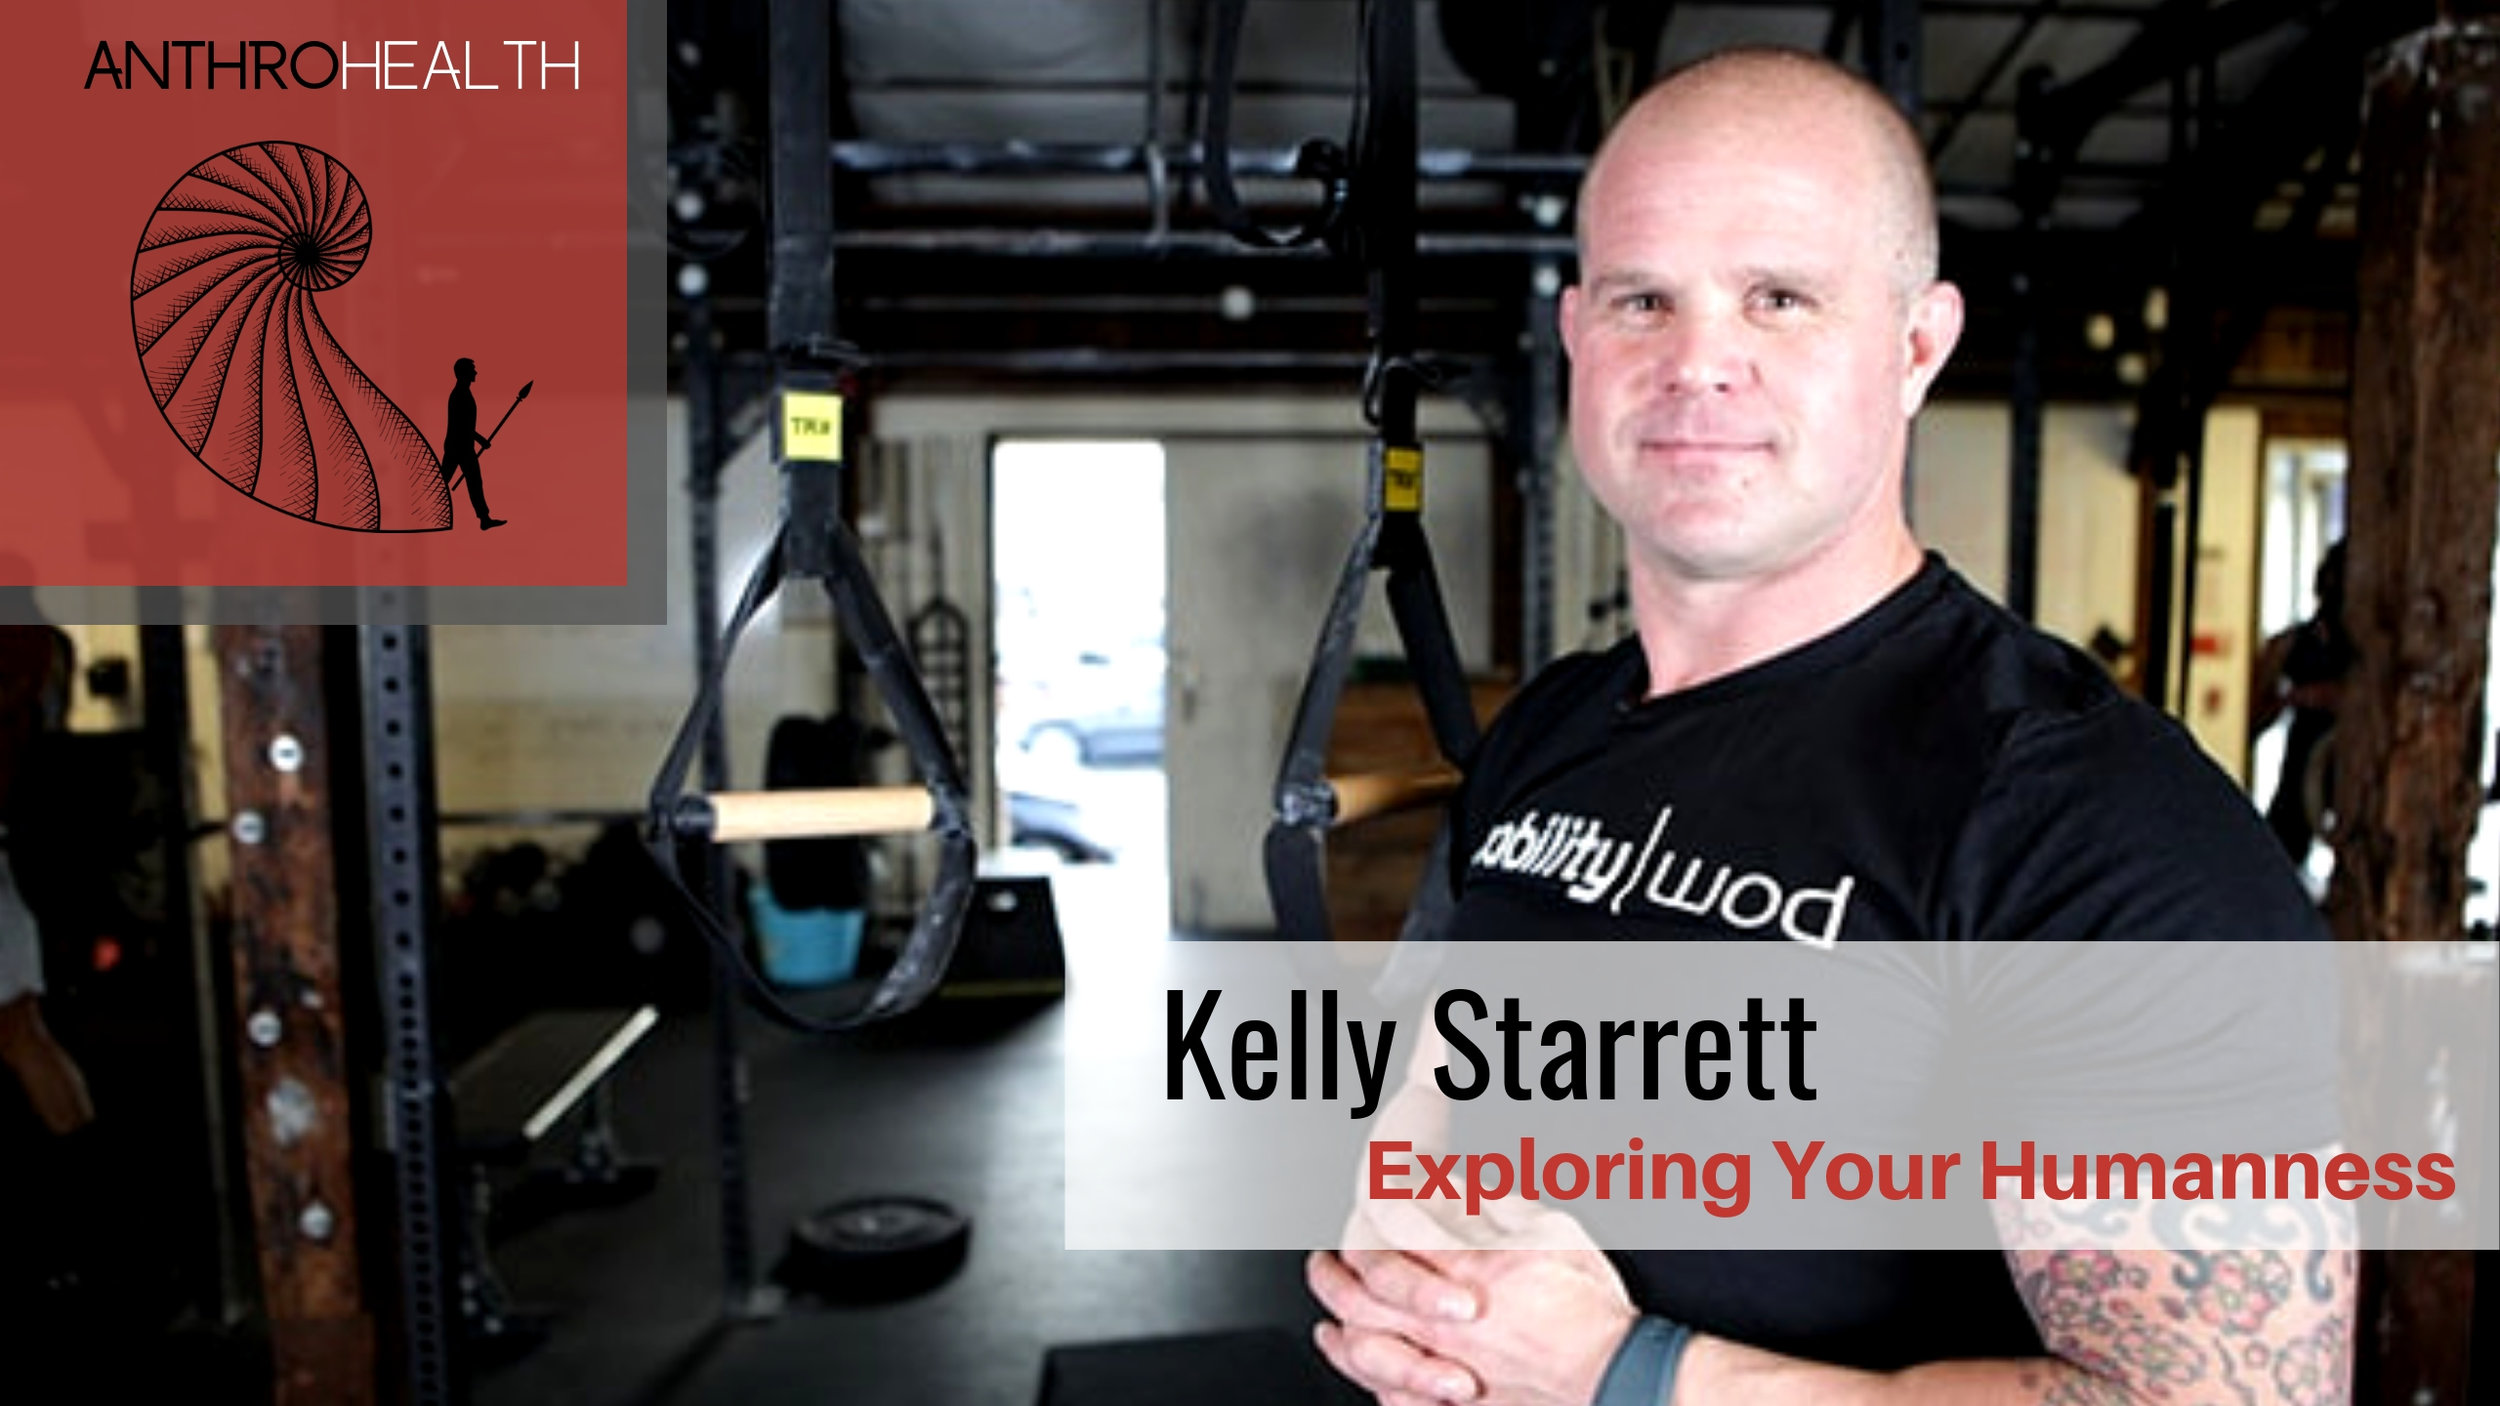 AnthroHealth - Kelly Starrett